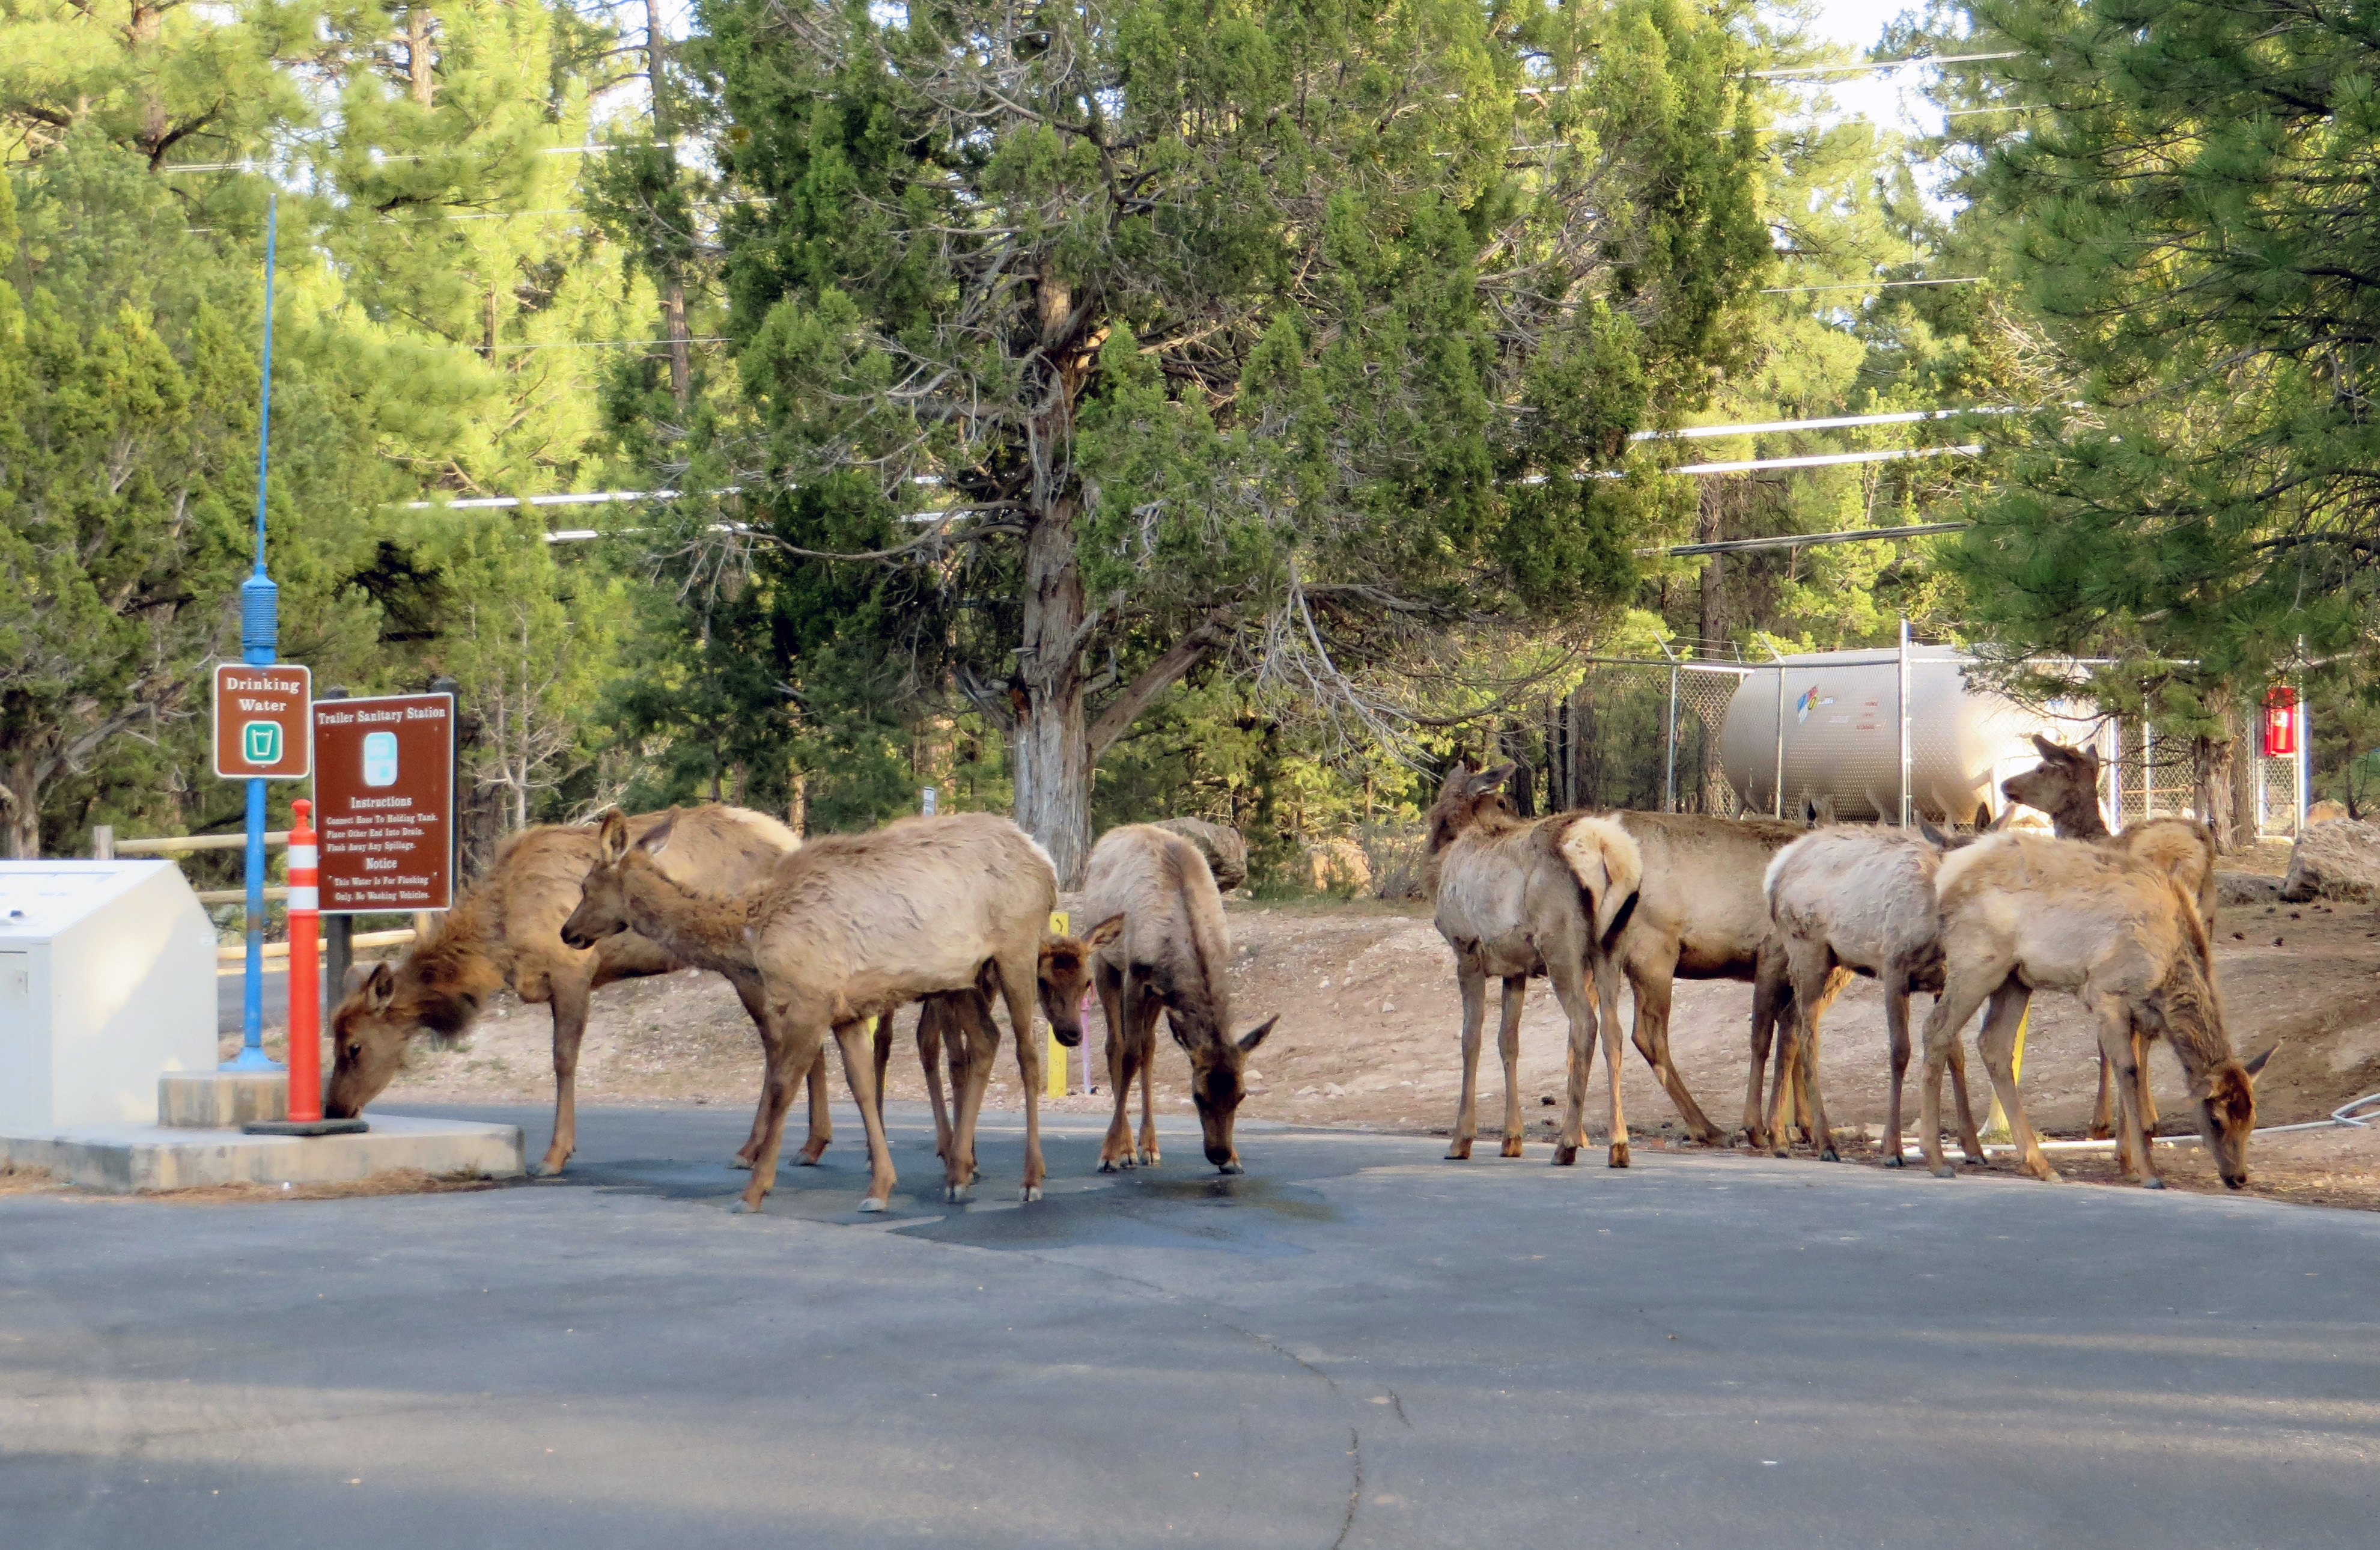 You know the world's gone to hell when the elk start huffing gas. (photo by D. Speredelozzi)